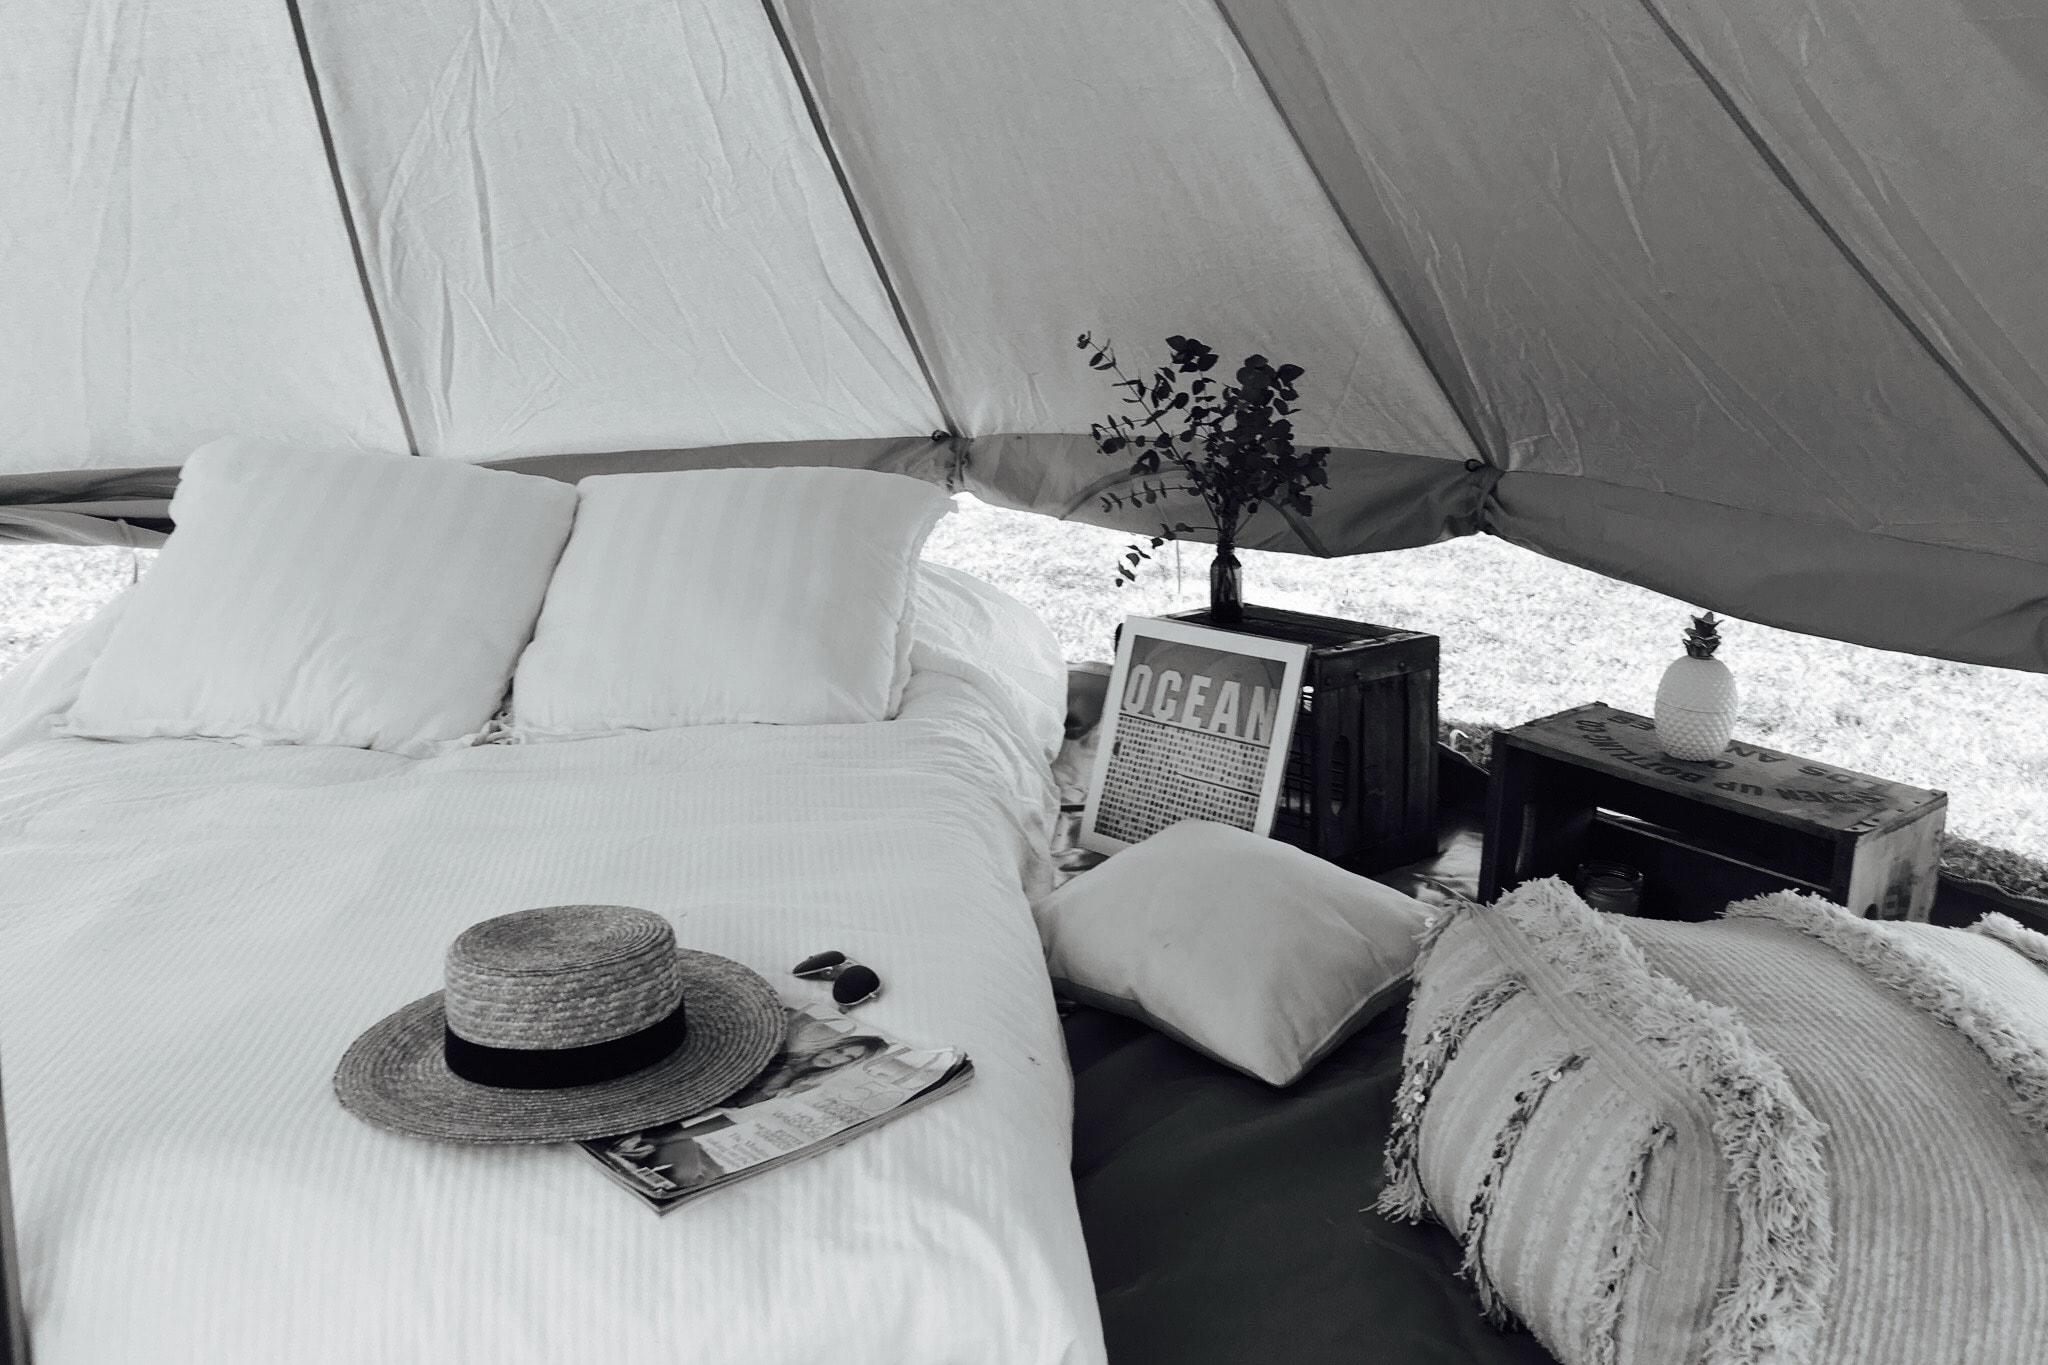 SNAZZY-CAMP-BIARRITZ-ACCOMMODATION-BASQUE-COUNTRY-CAMPING-GLAMPING-FRANCE-HOLIDAYS (24).jpg